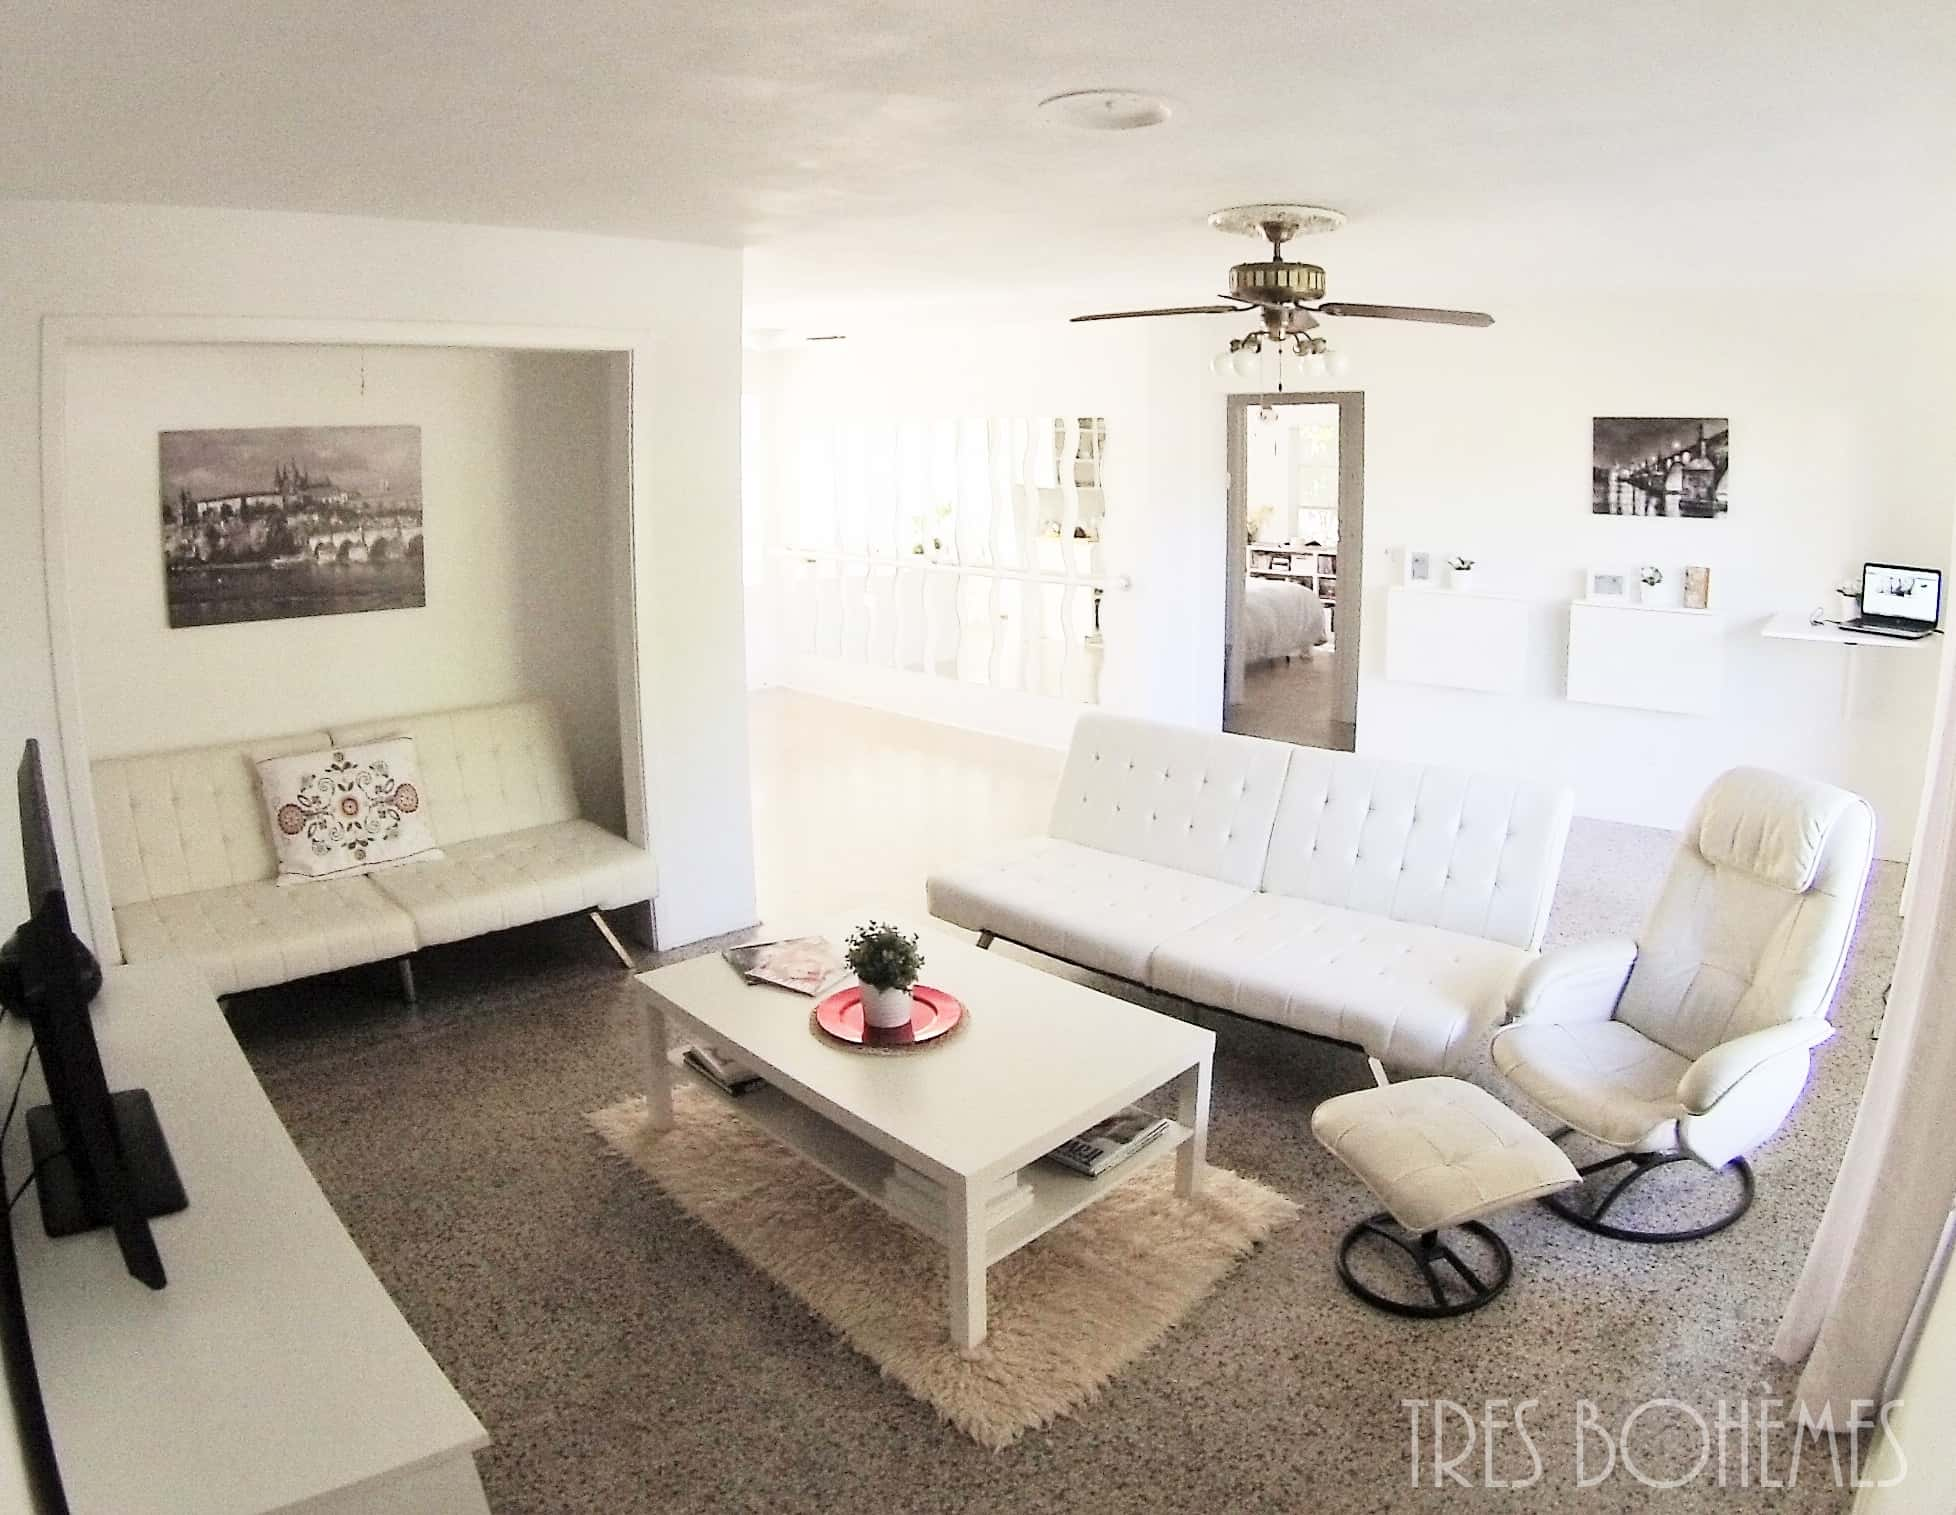 Tour our light and peaceful home tres bohemes for Peaceful living room ideas